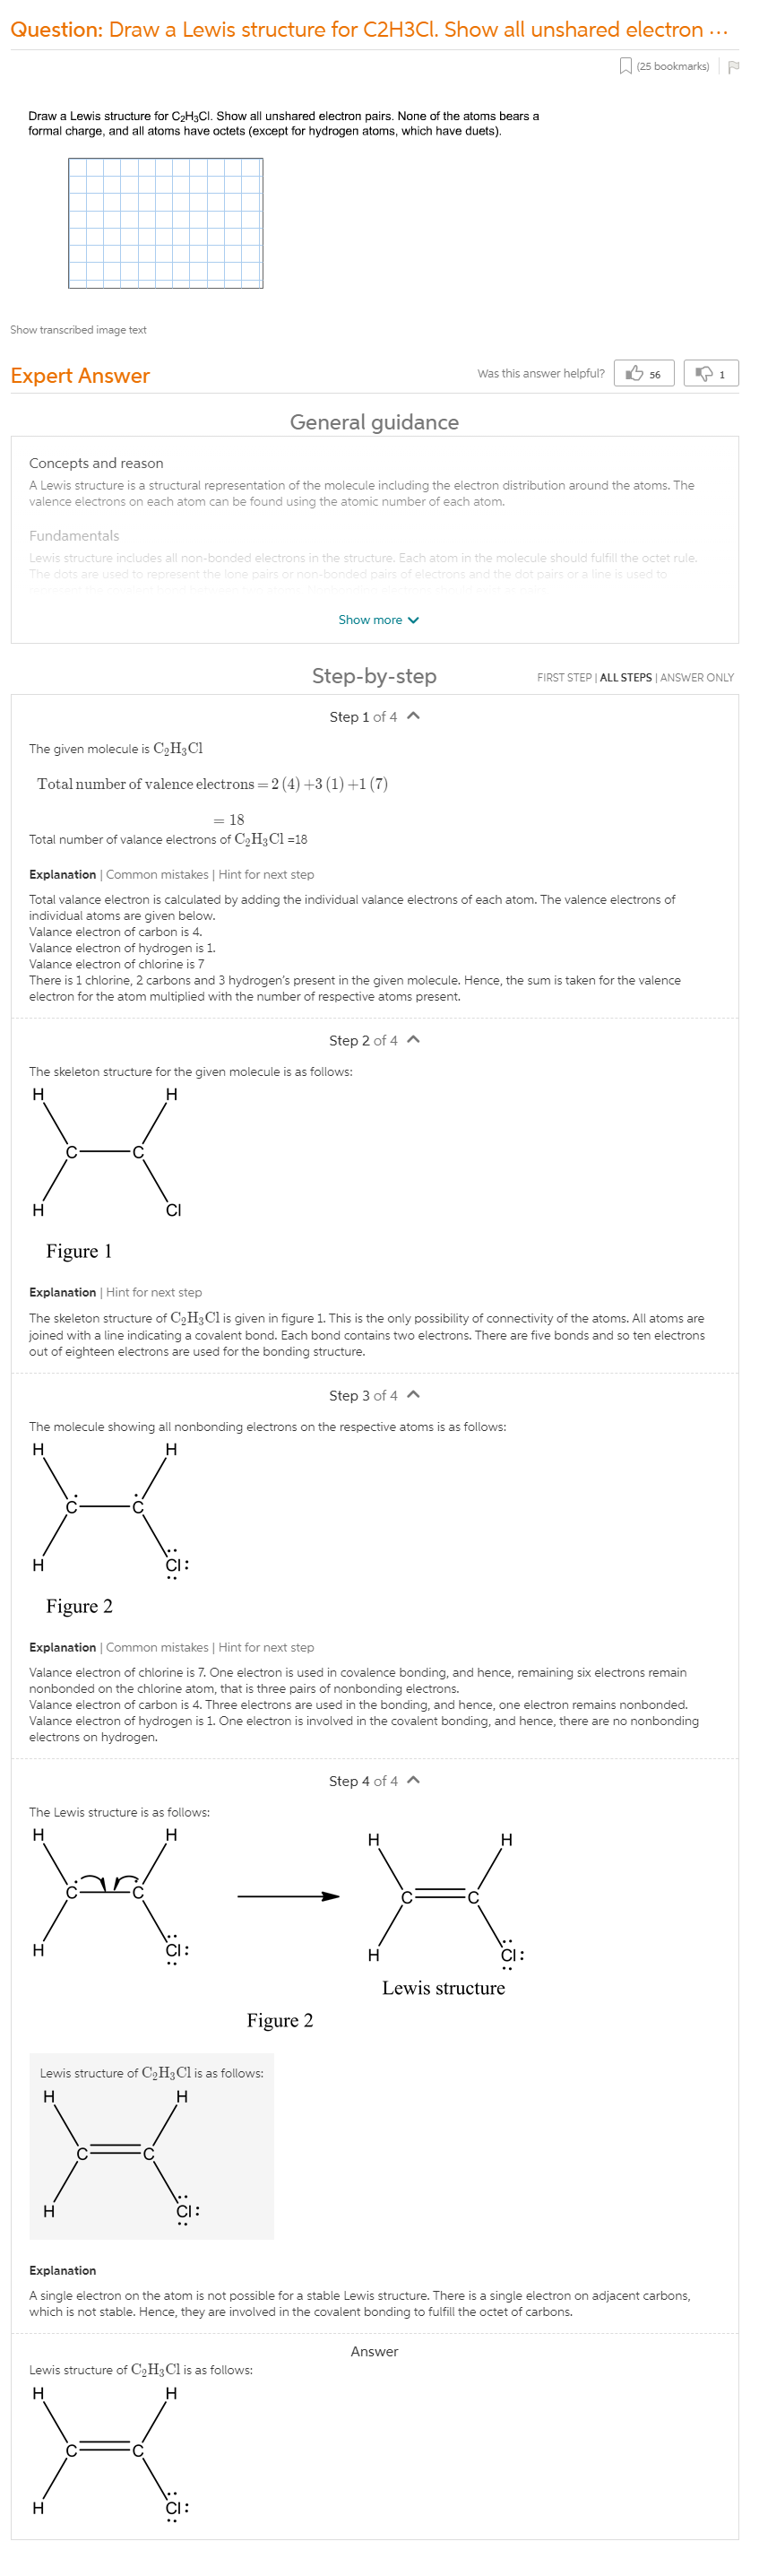 Draw A Lewis Structure For C2H3Cl. Show All Unshared Electron Pairs. None  Of The Atoms Bears A Formal Charge, And All Atoms Have Octets (except For  Hydrogen Atoms, Which Have Duets).